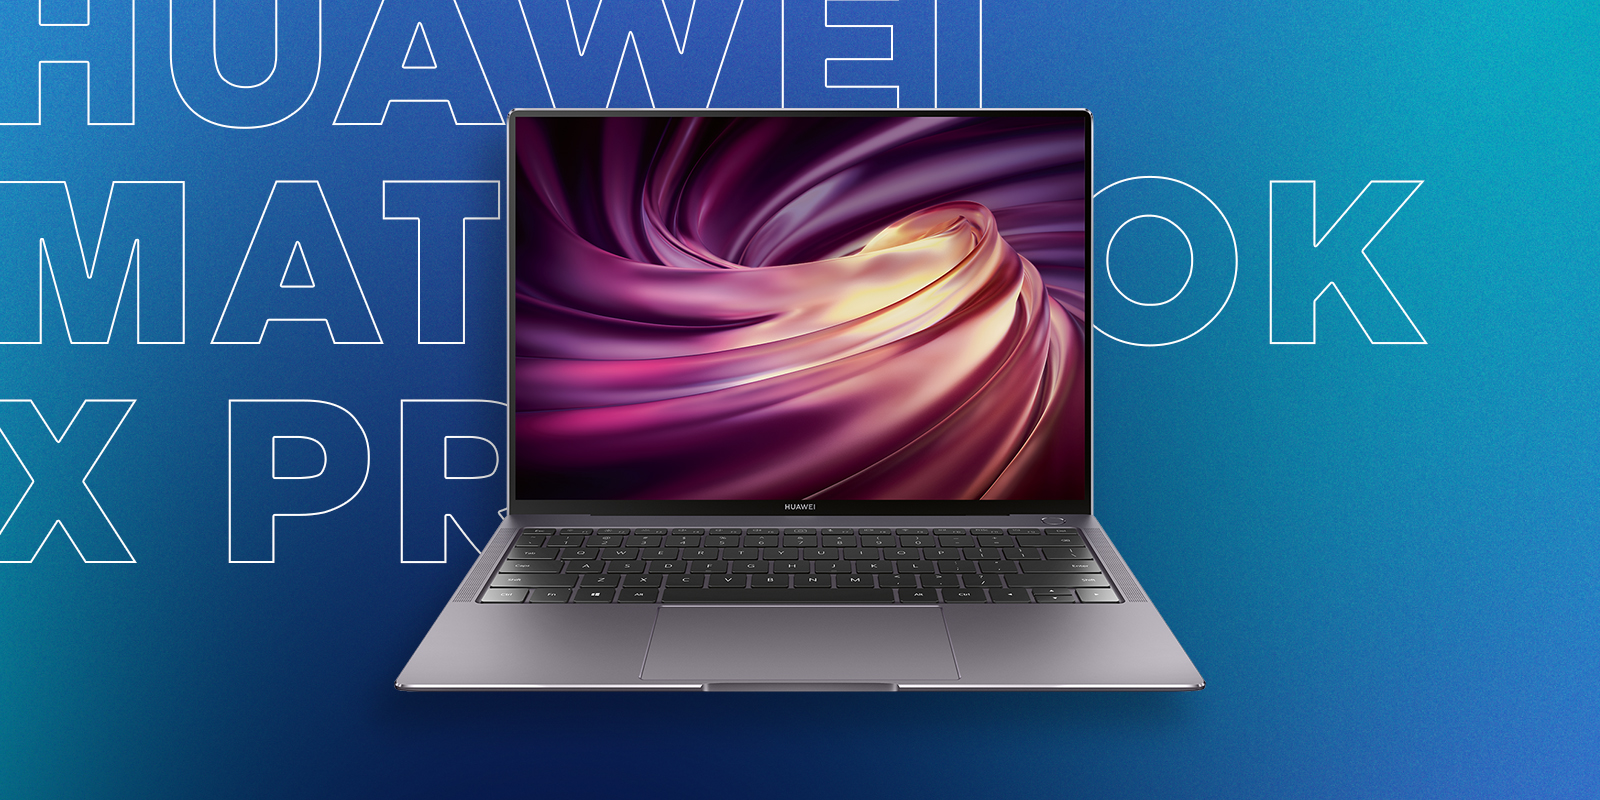 Huawei MateBook X Pro Best Laptop for Graphic Design